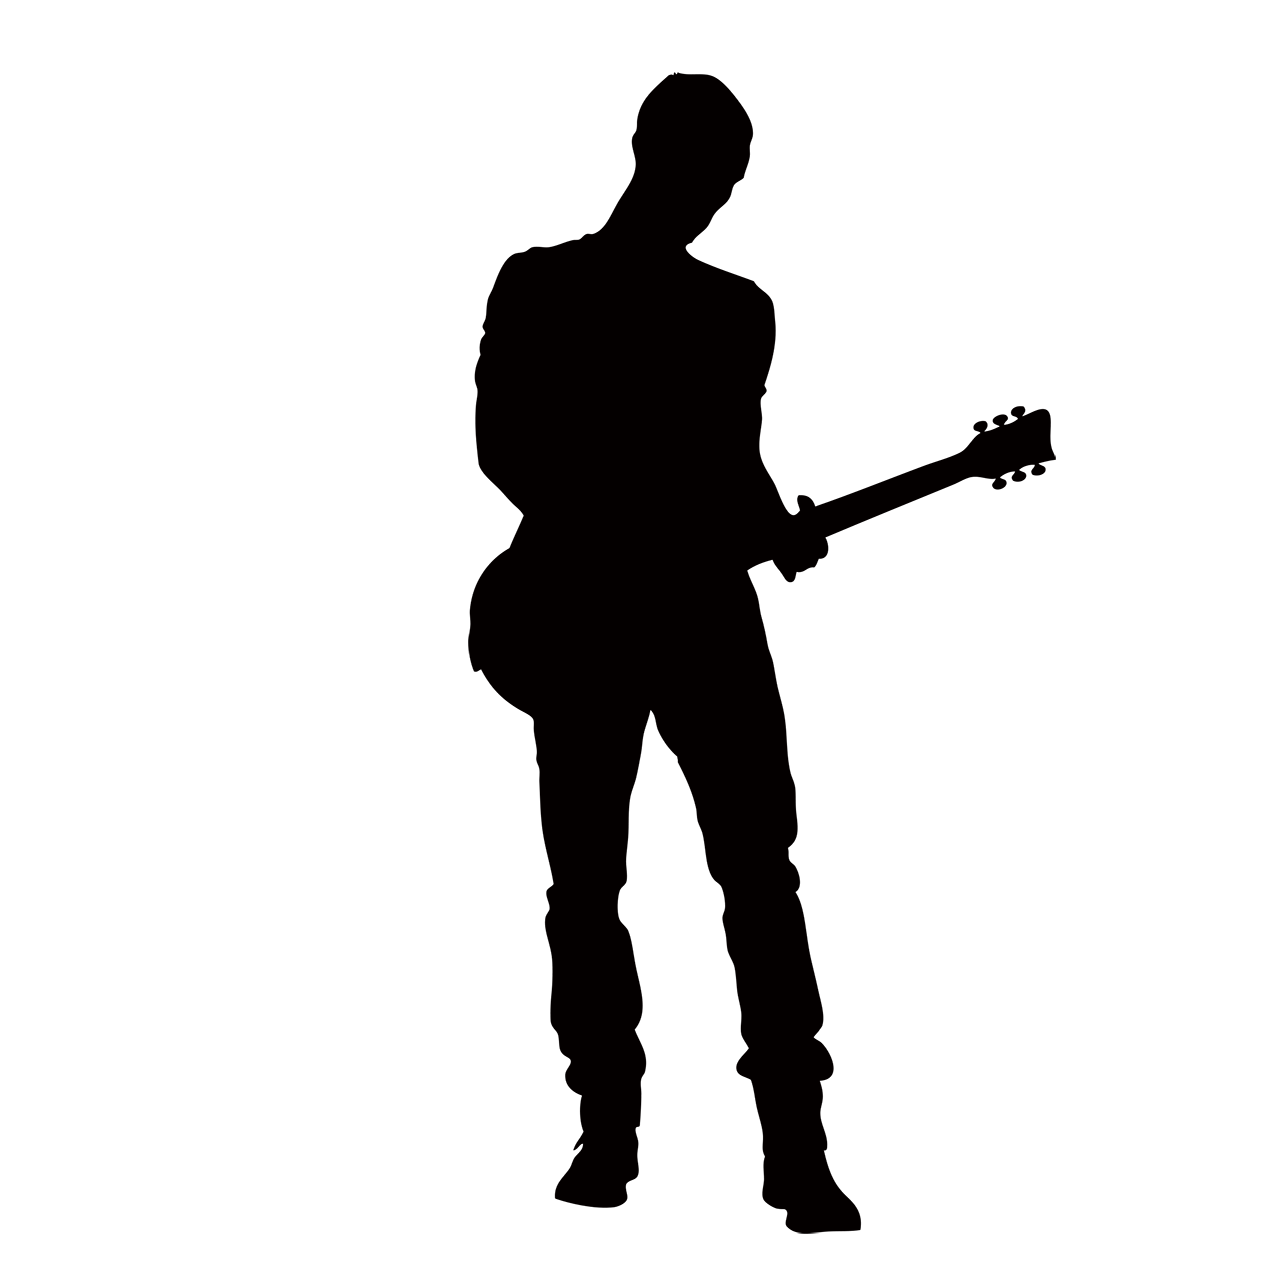 man playing guitar silhouette acoustic guitar silhouette stock footage video shutterstock guitar silhouette man playing